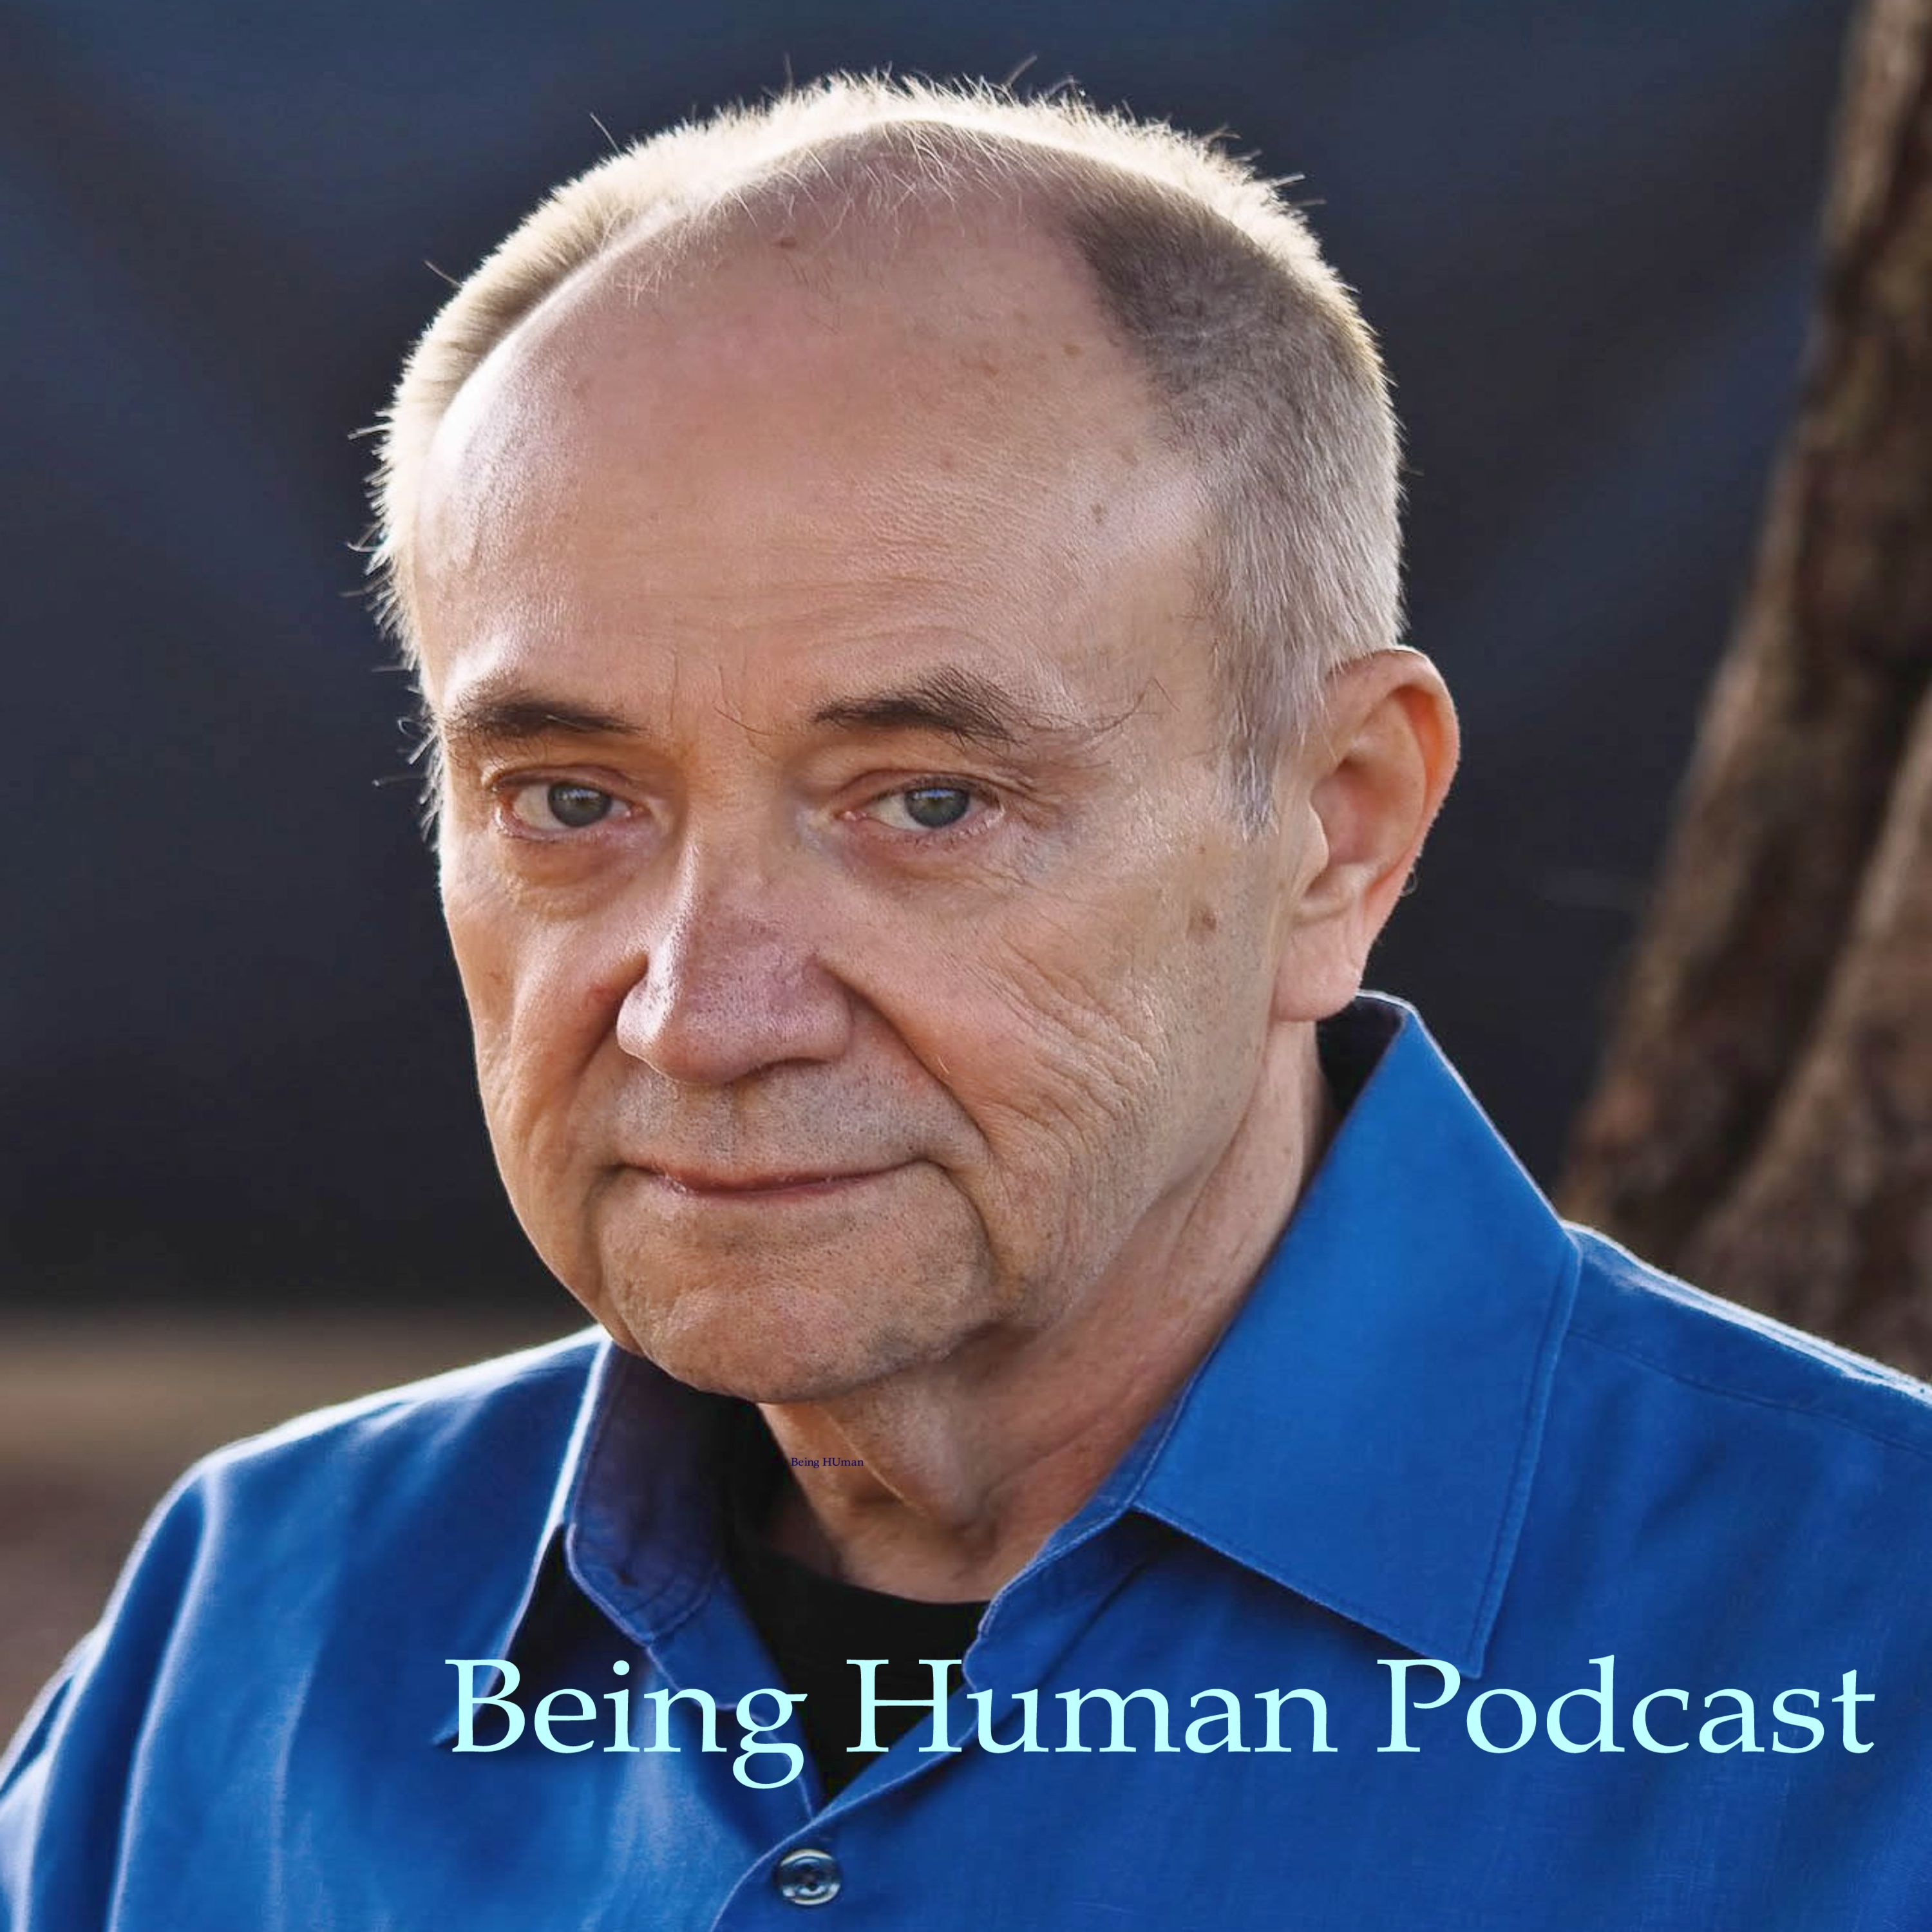 Being Human Podcast